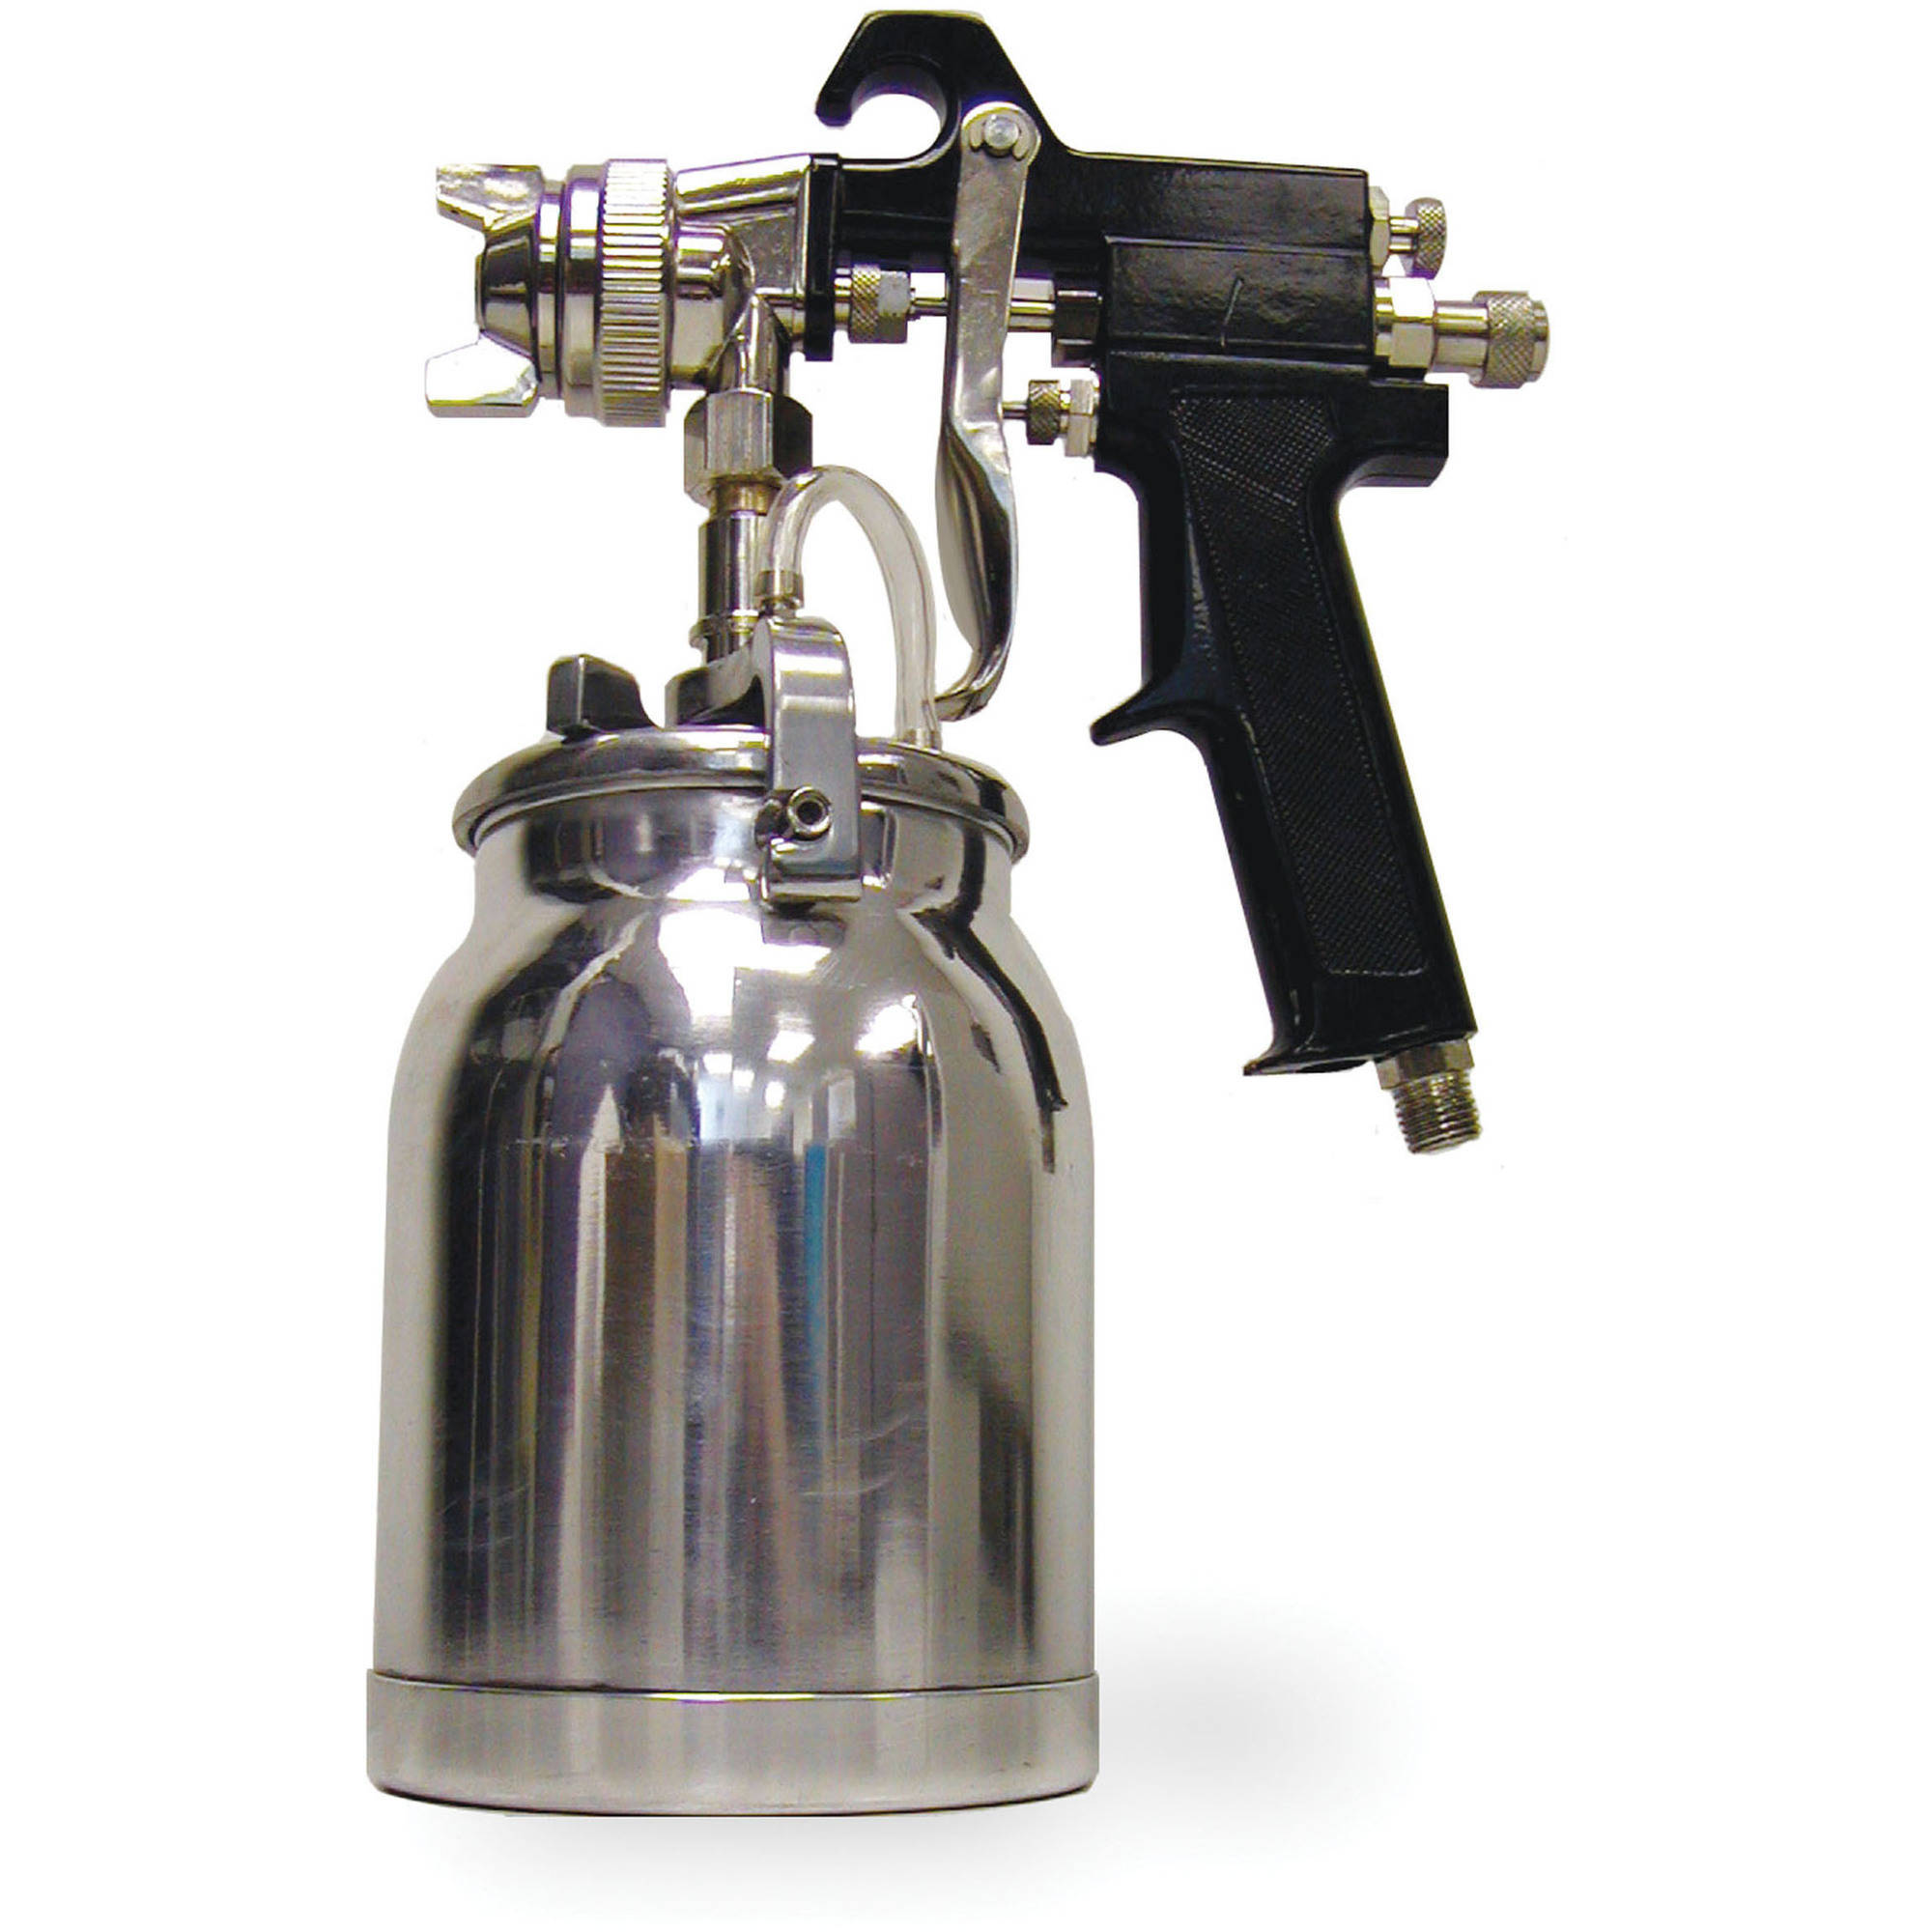 Buffalo Tools 1 qt Industrial Paint Spray Gun